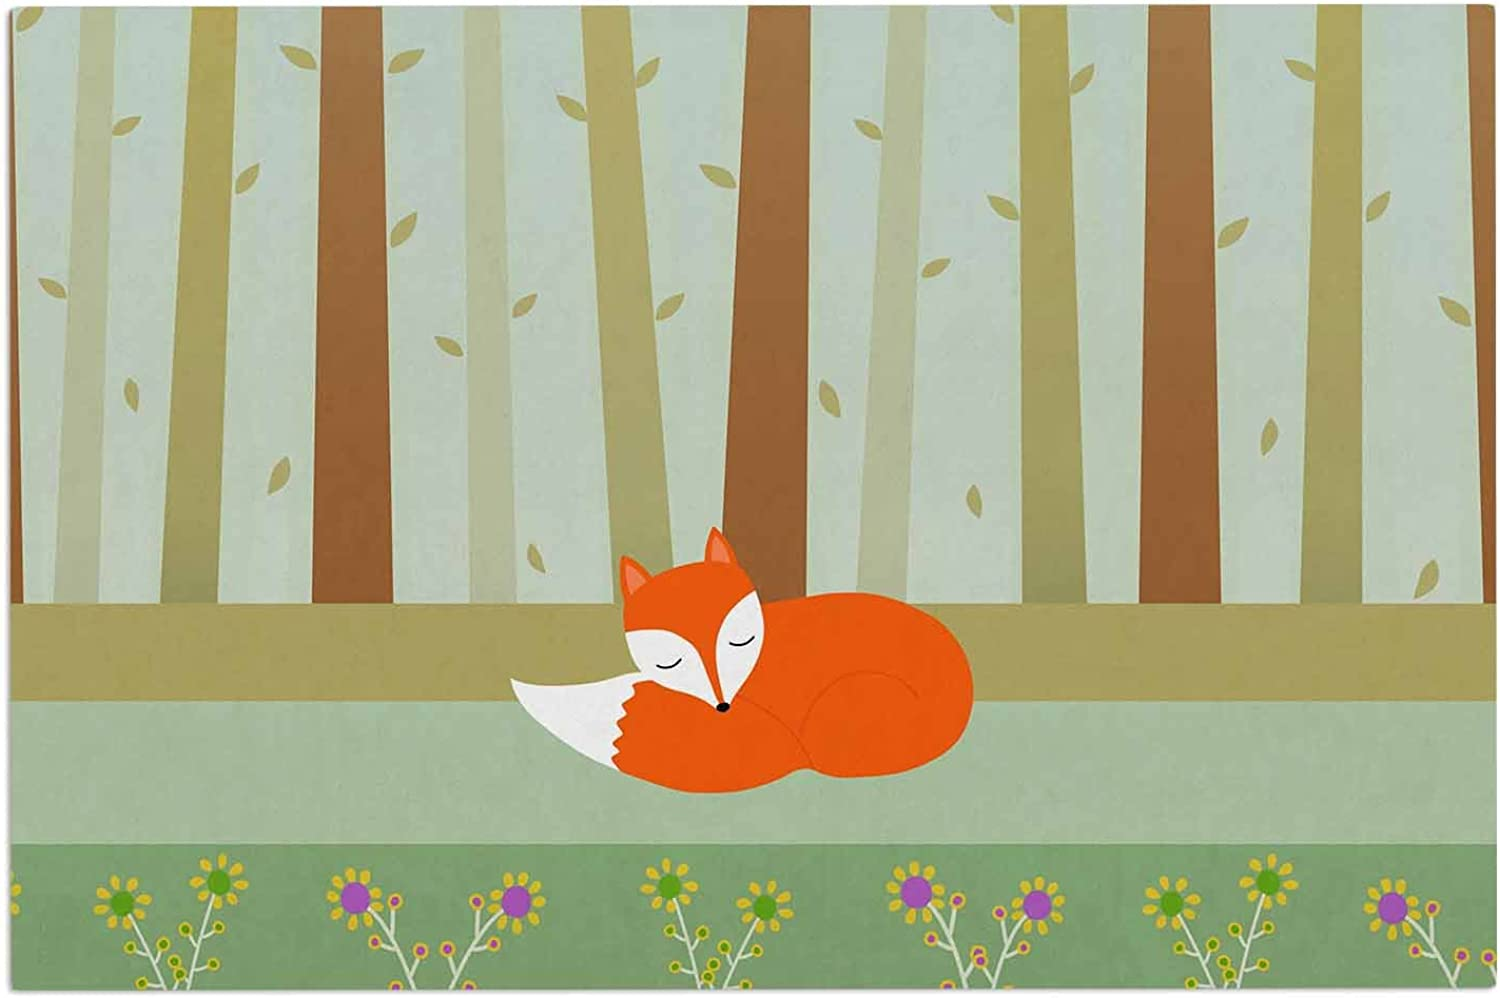 KESS InHouse Cristina Bianco Design Sleeping Fox Green Illustration Decorative Door, 2' x 3' Floor Mat